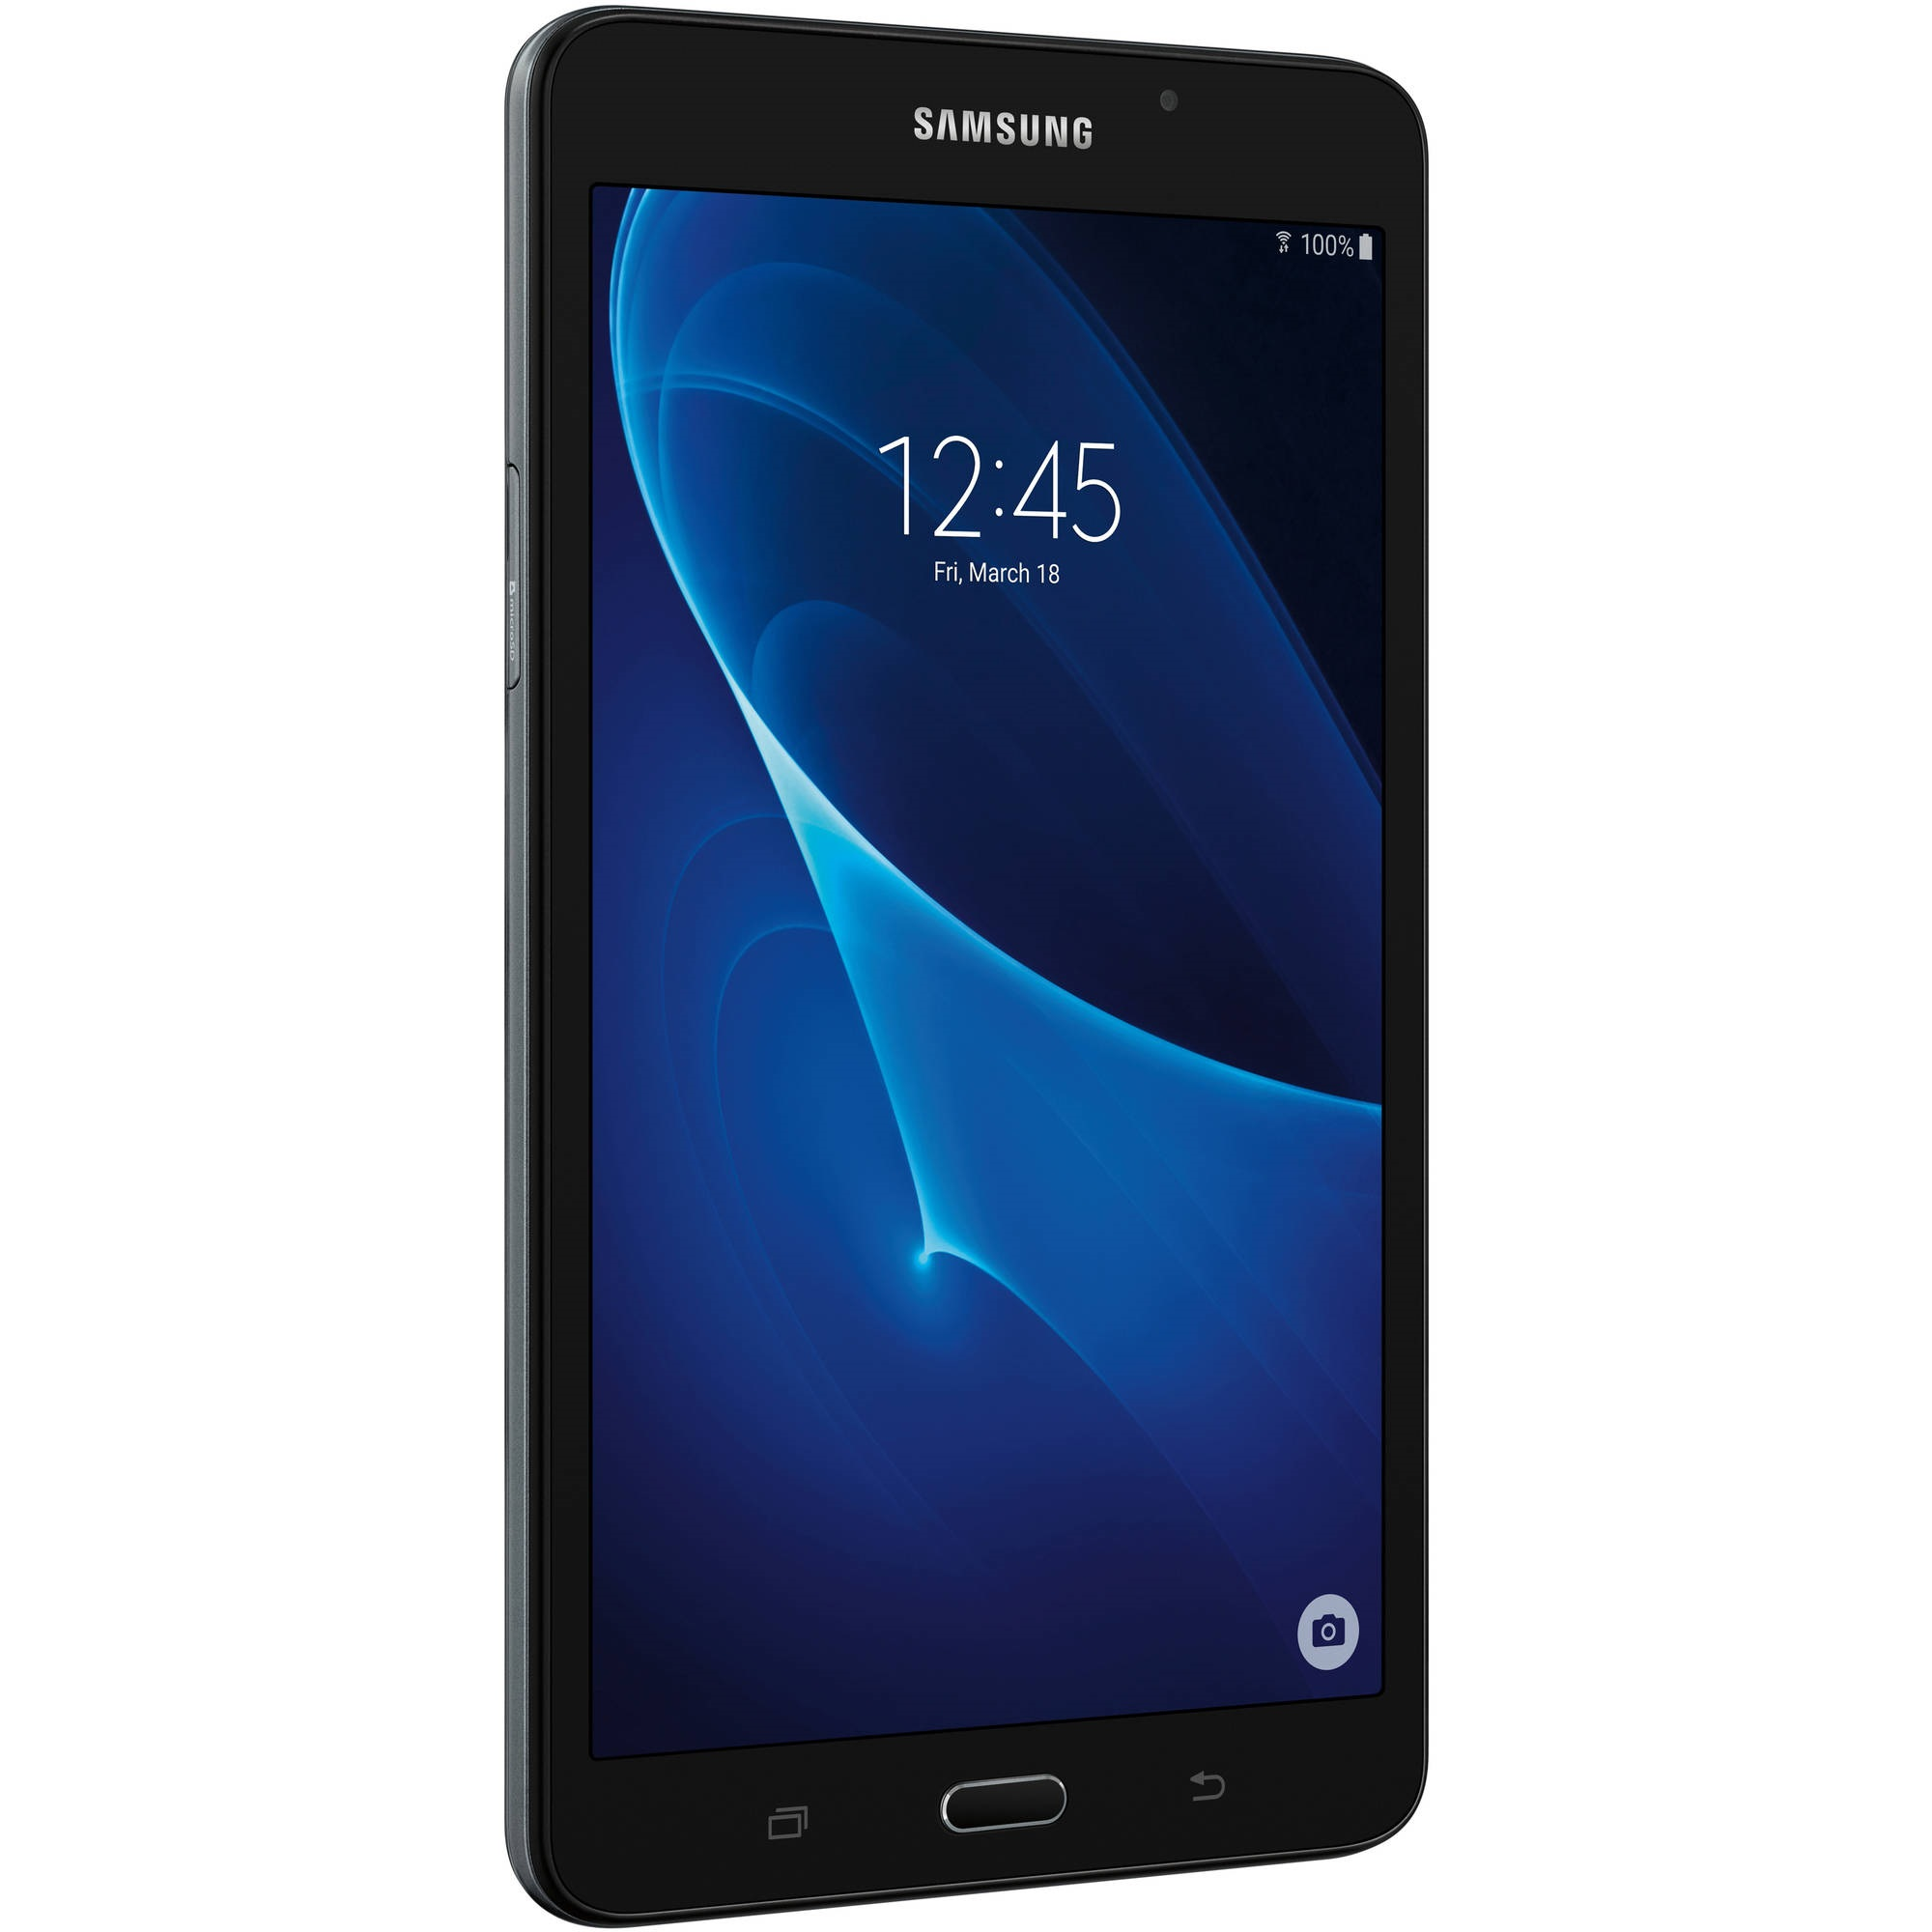 "Refurbished Samsung Galaxy Tab A 7.0"" 8GB Black Wi-Fi SM-T280NZKRXAR"